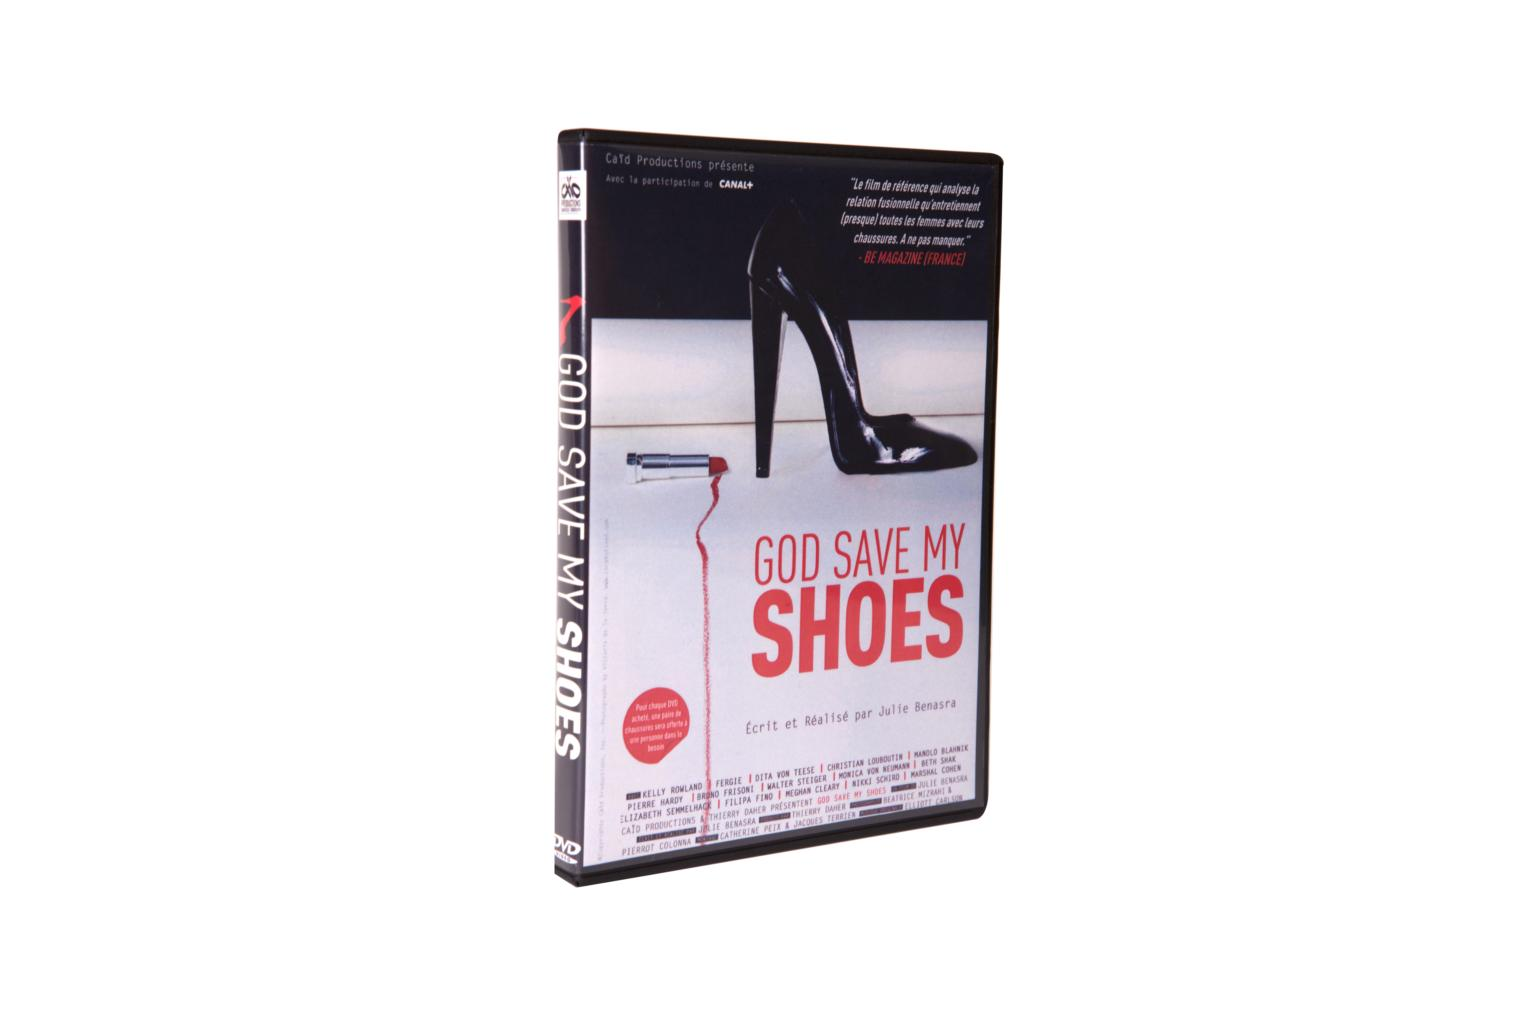 Dvd God Save my Shoes God Save my Shoes Dvd God Save